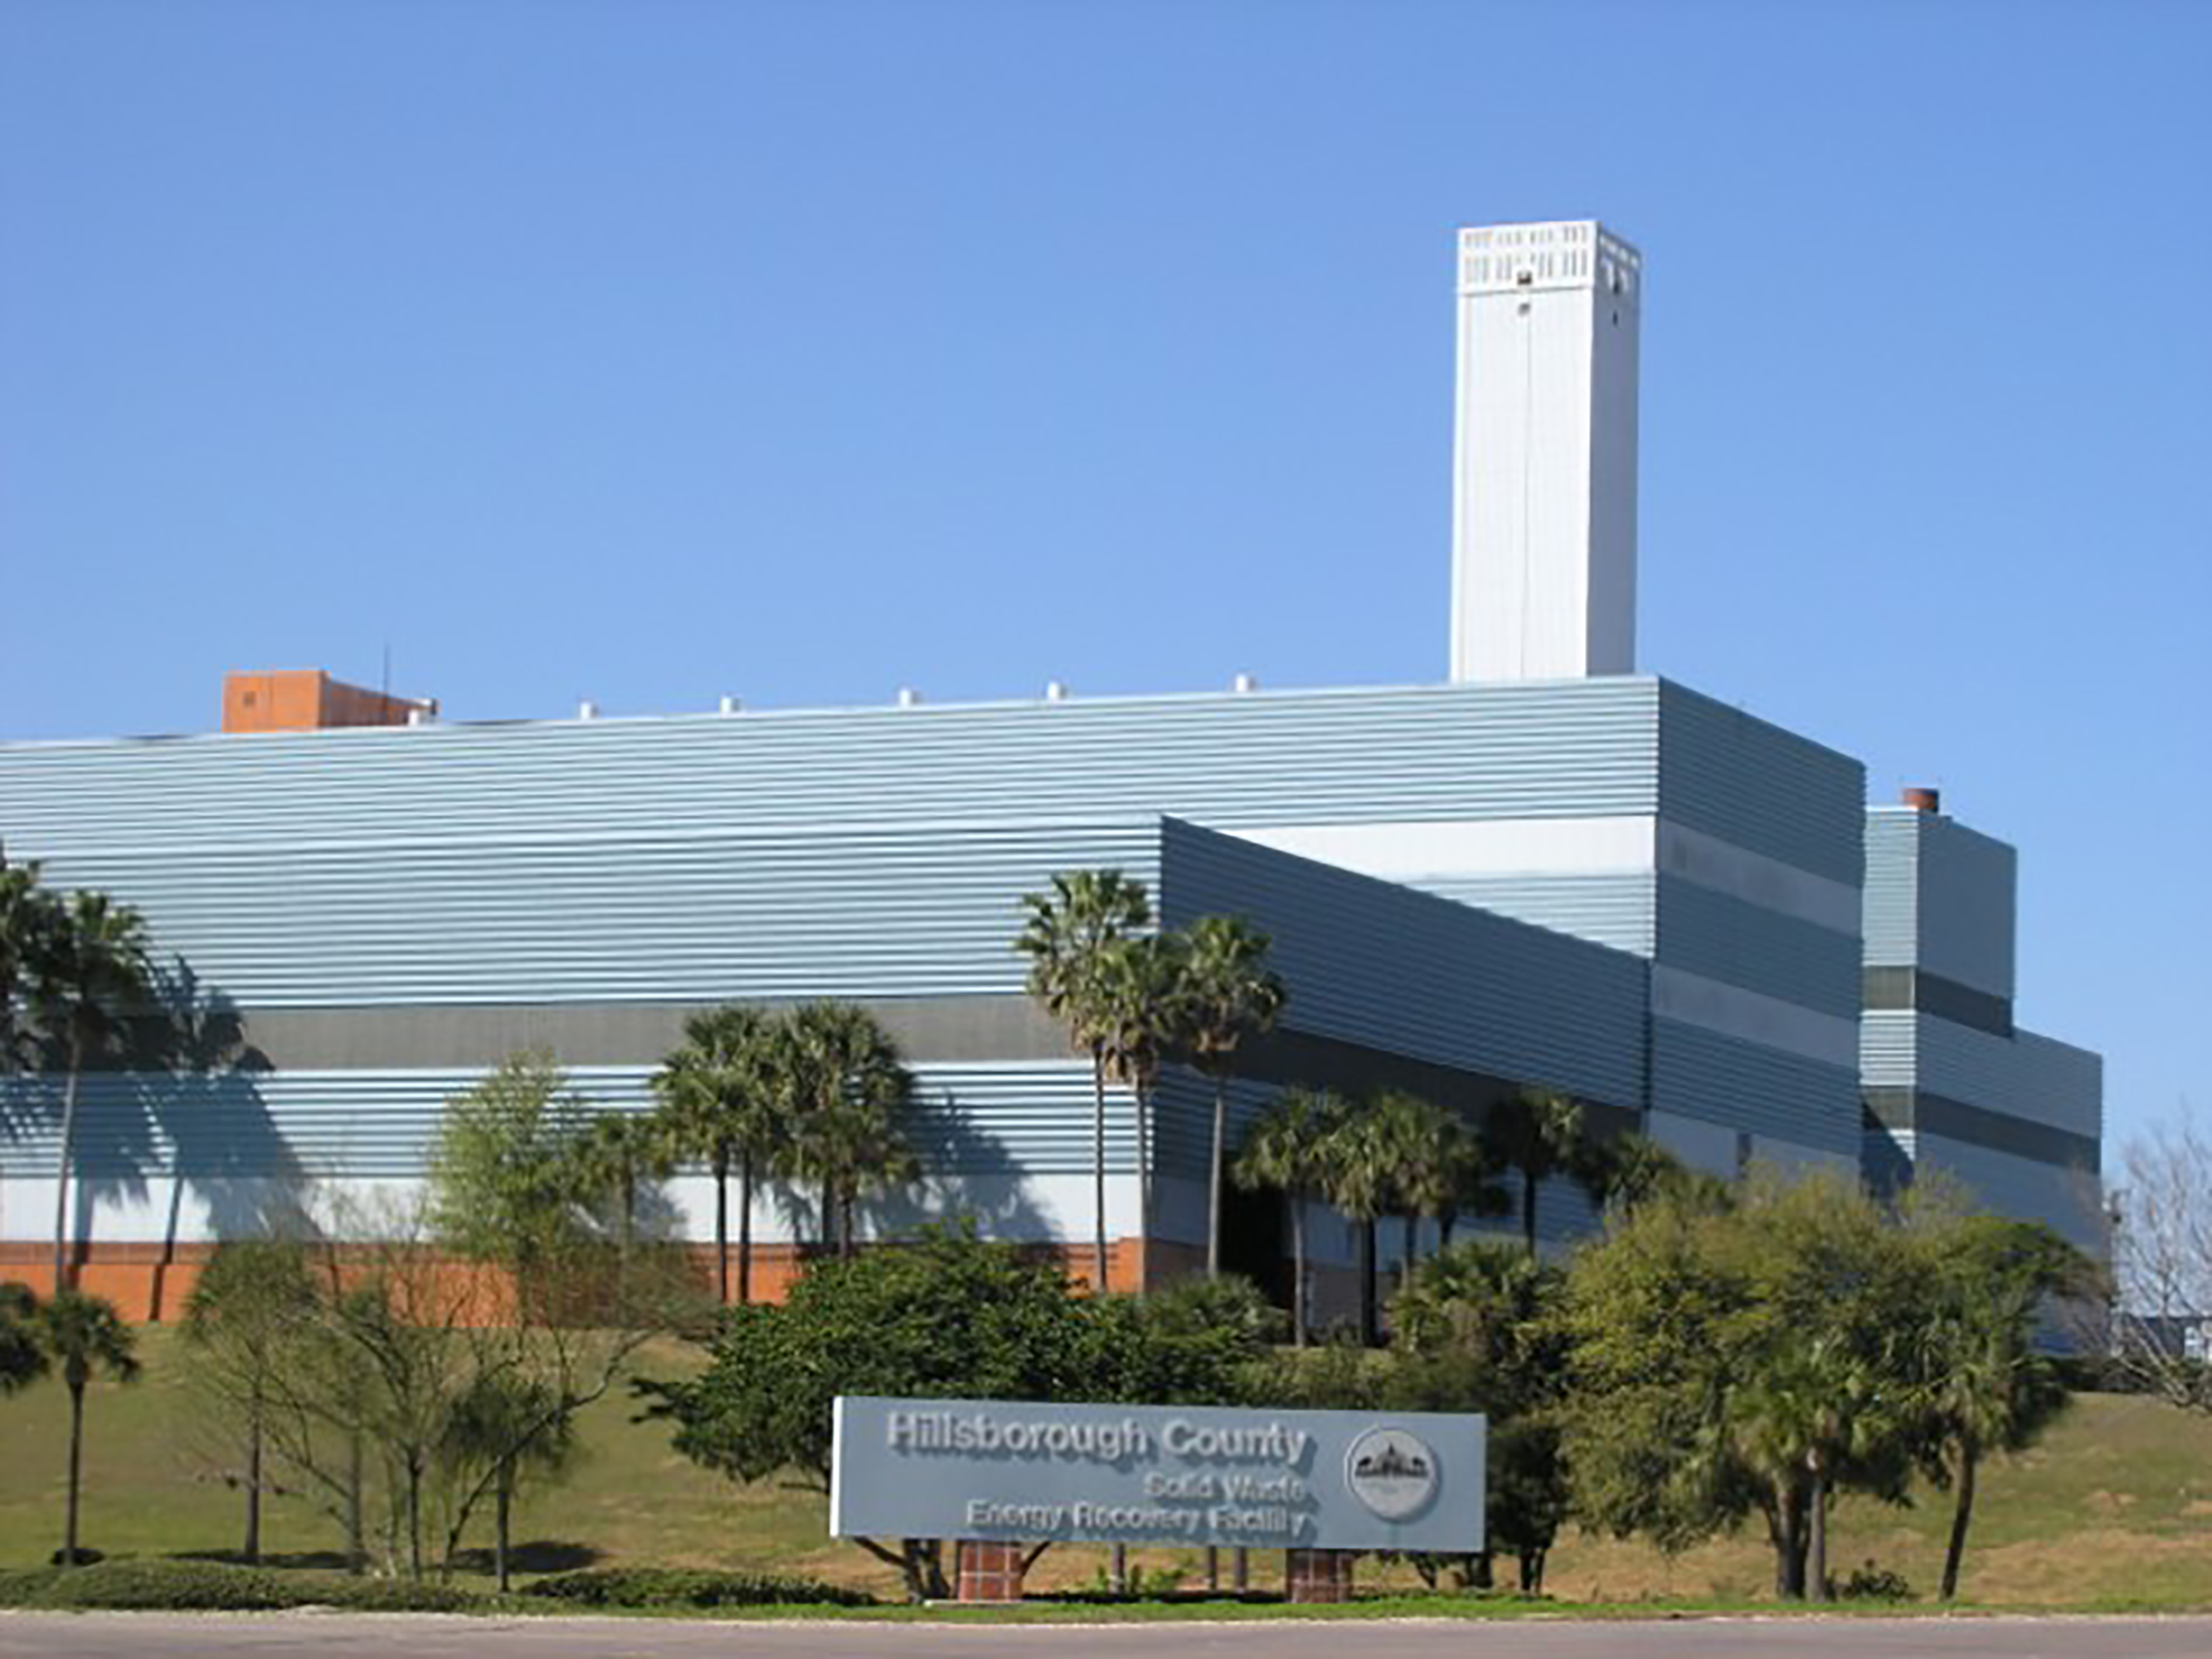 Hillsborough County Resource Recovery Facility